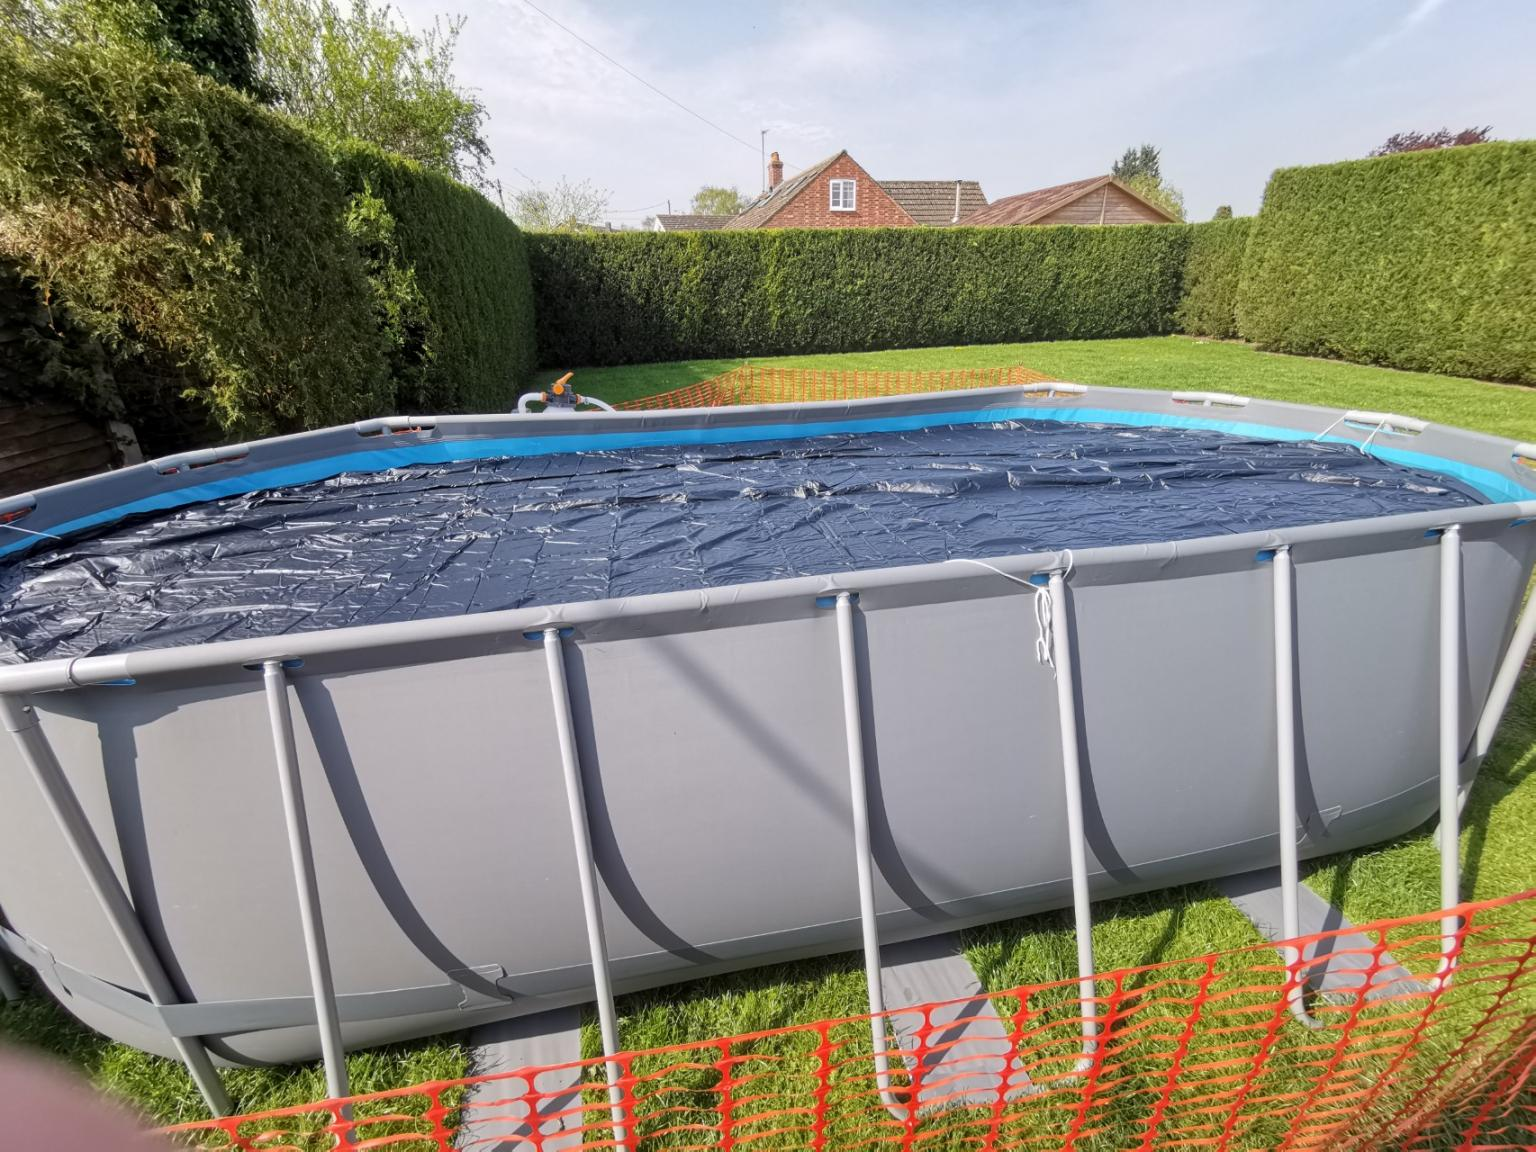 Bestway Solar Heat Swimming Pool 5 4m X 3 2m In Aylesbury Vale For 300 00 For Sale Shpock